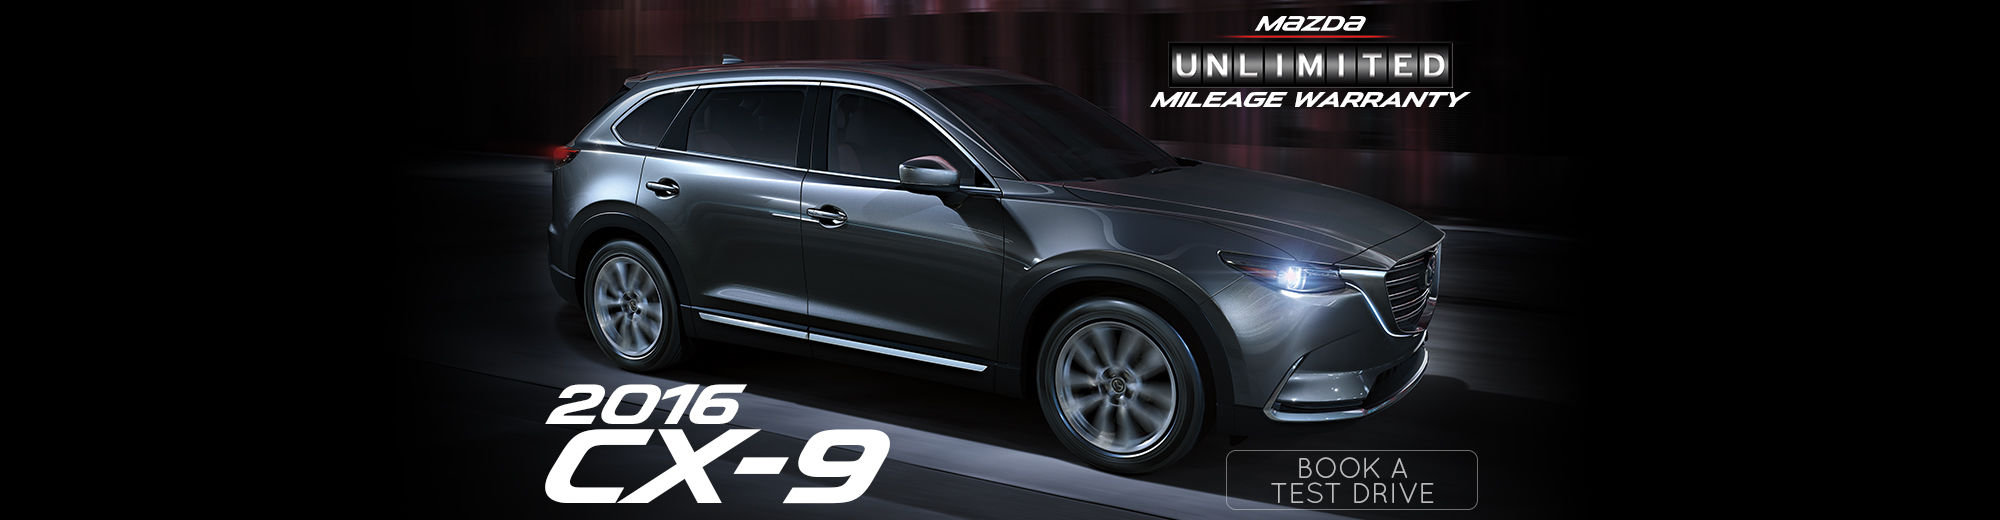 The New 2016 CX-9 is Now Available at Kramer Mazda!